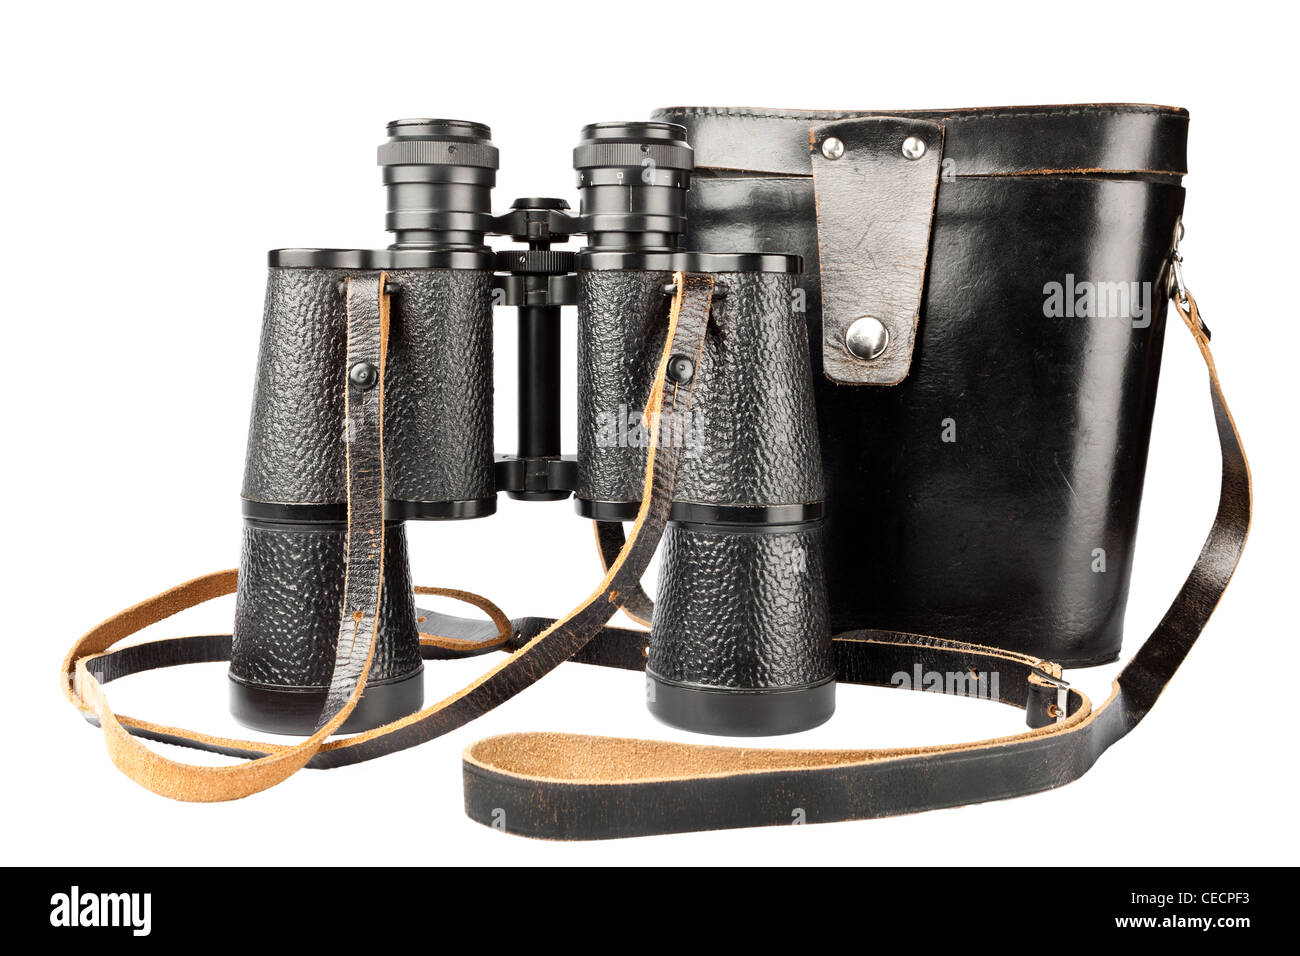 Old antic binocular coated with leather and it's black case with a long strap, isolated on white background - Stock Image